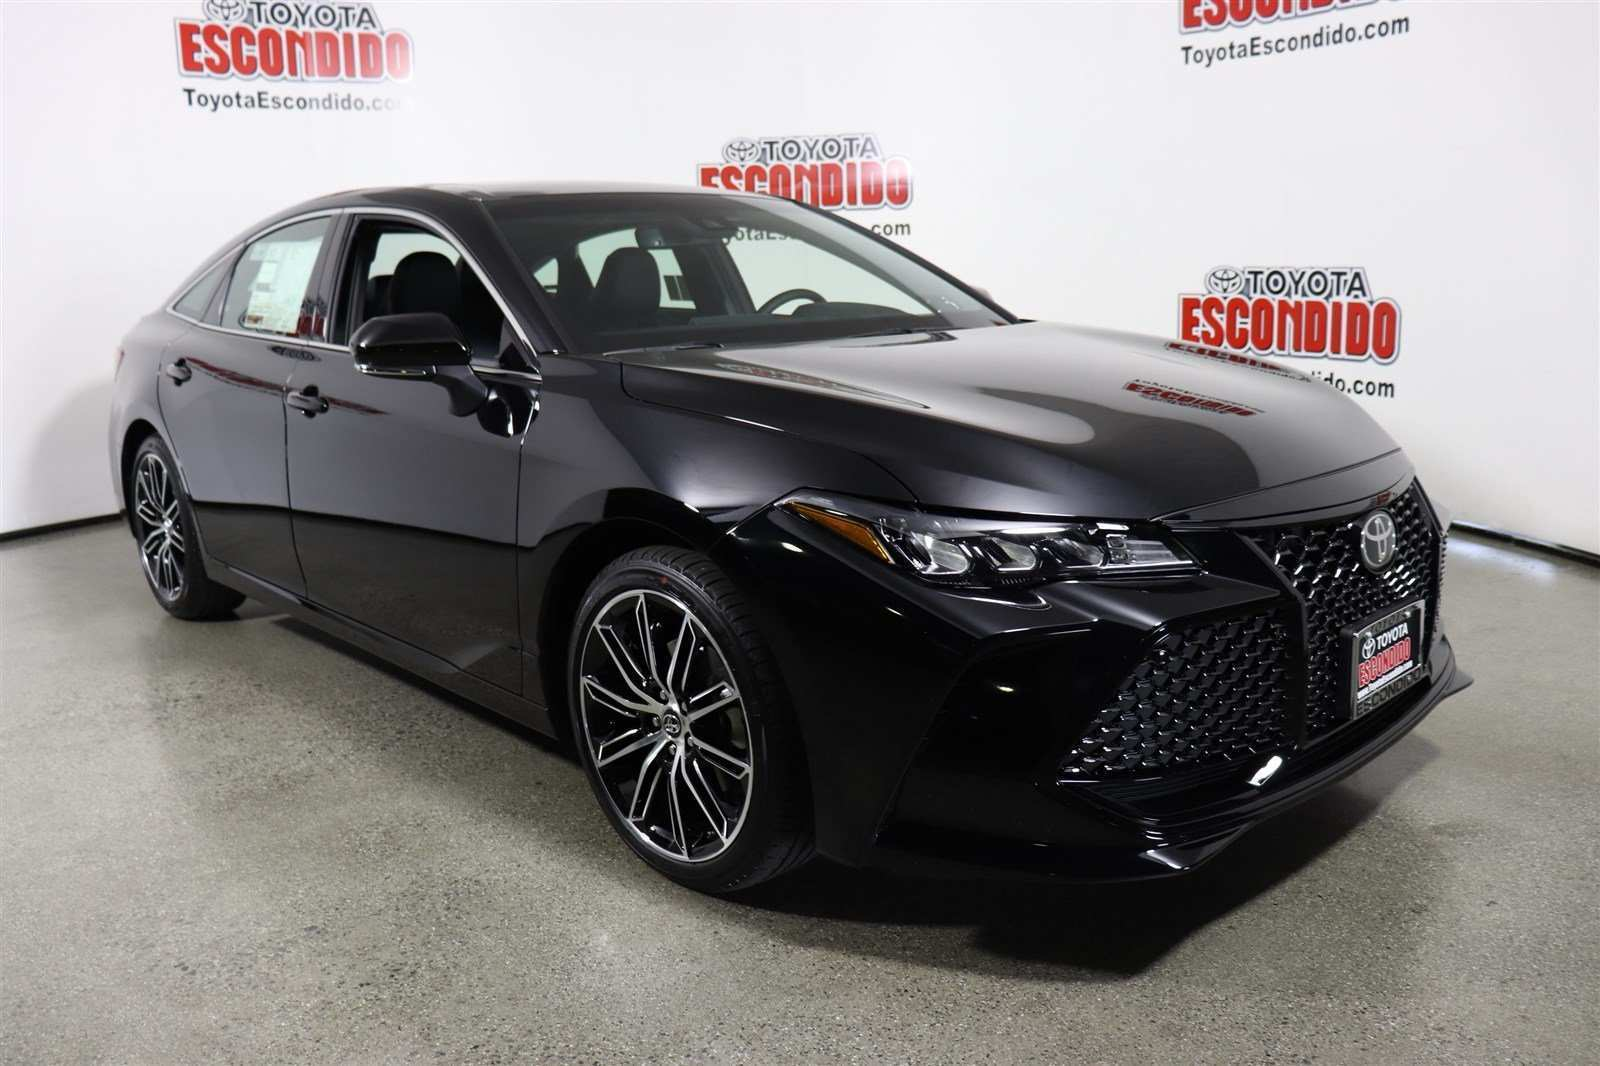 57 Best Review 2019 Toyota Avalon Xse Interior with 2019 Toyota Avalon Xse